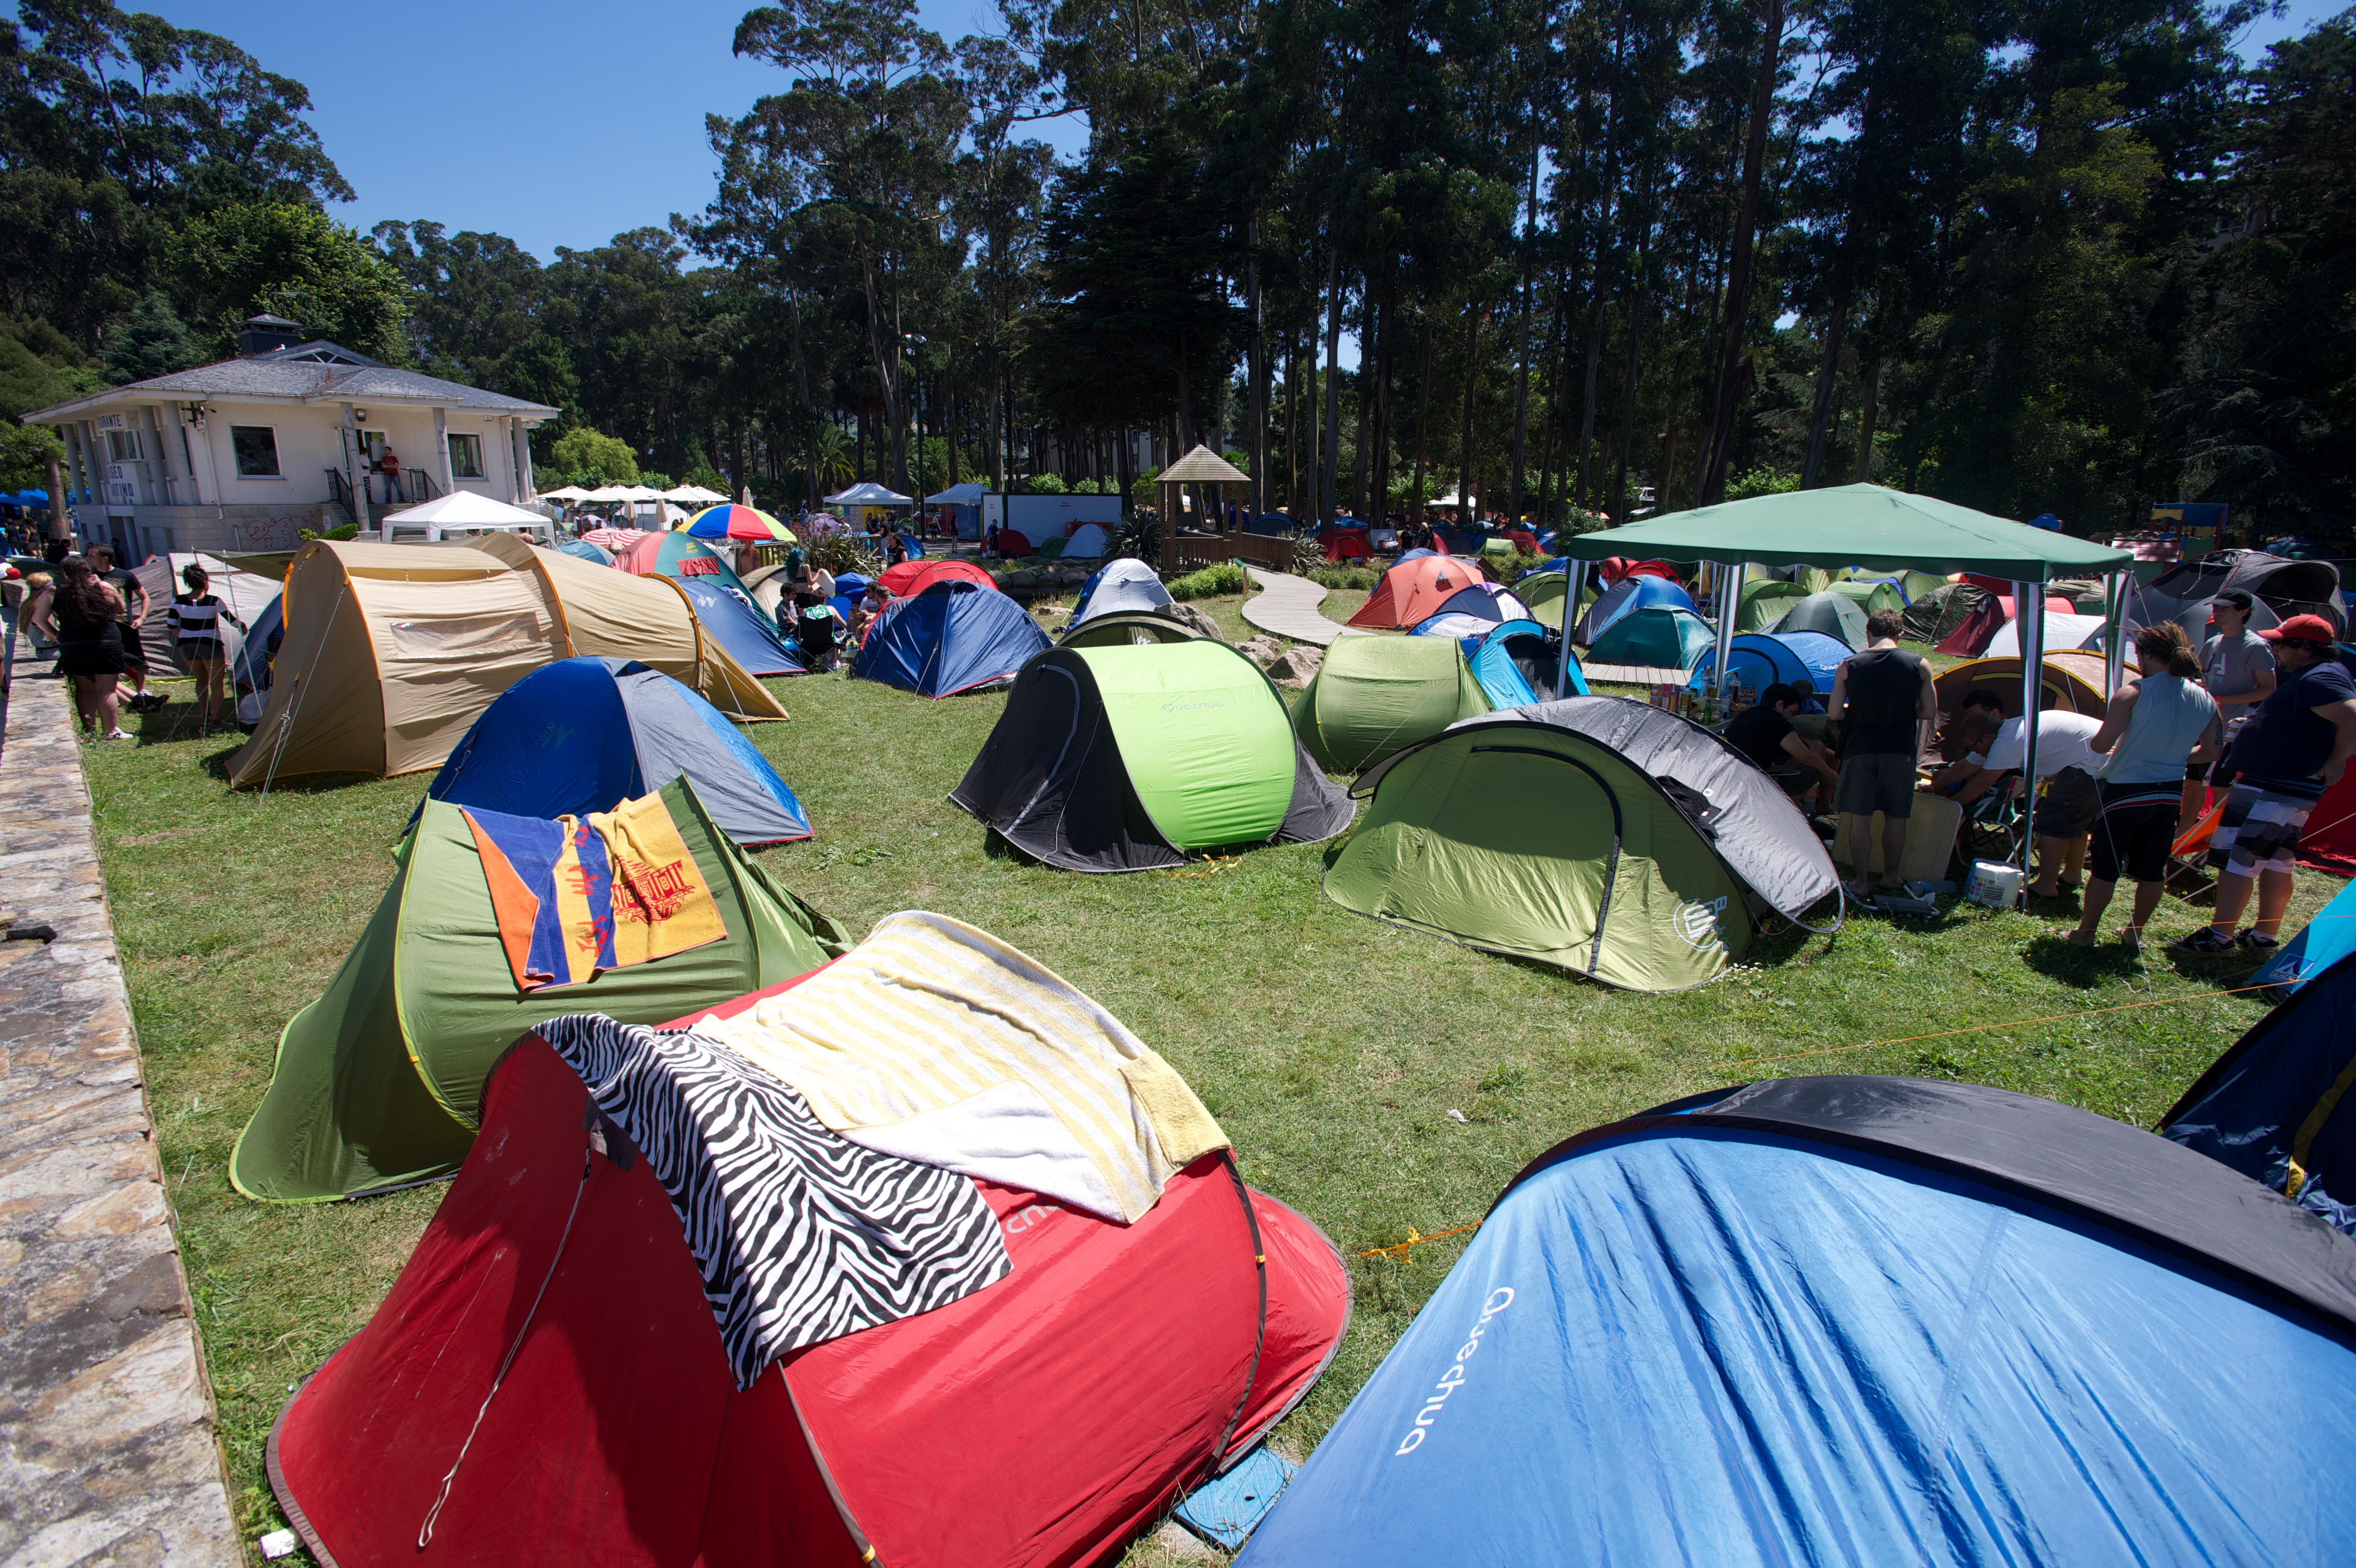 3044df96a98 It will be your favourite camping if you especially enjoy party and a good  atmosphere near the beach and the city center. This year there will also be  a ...